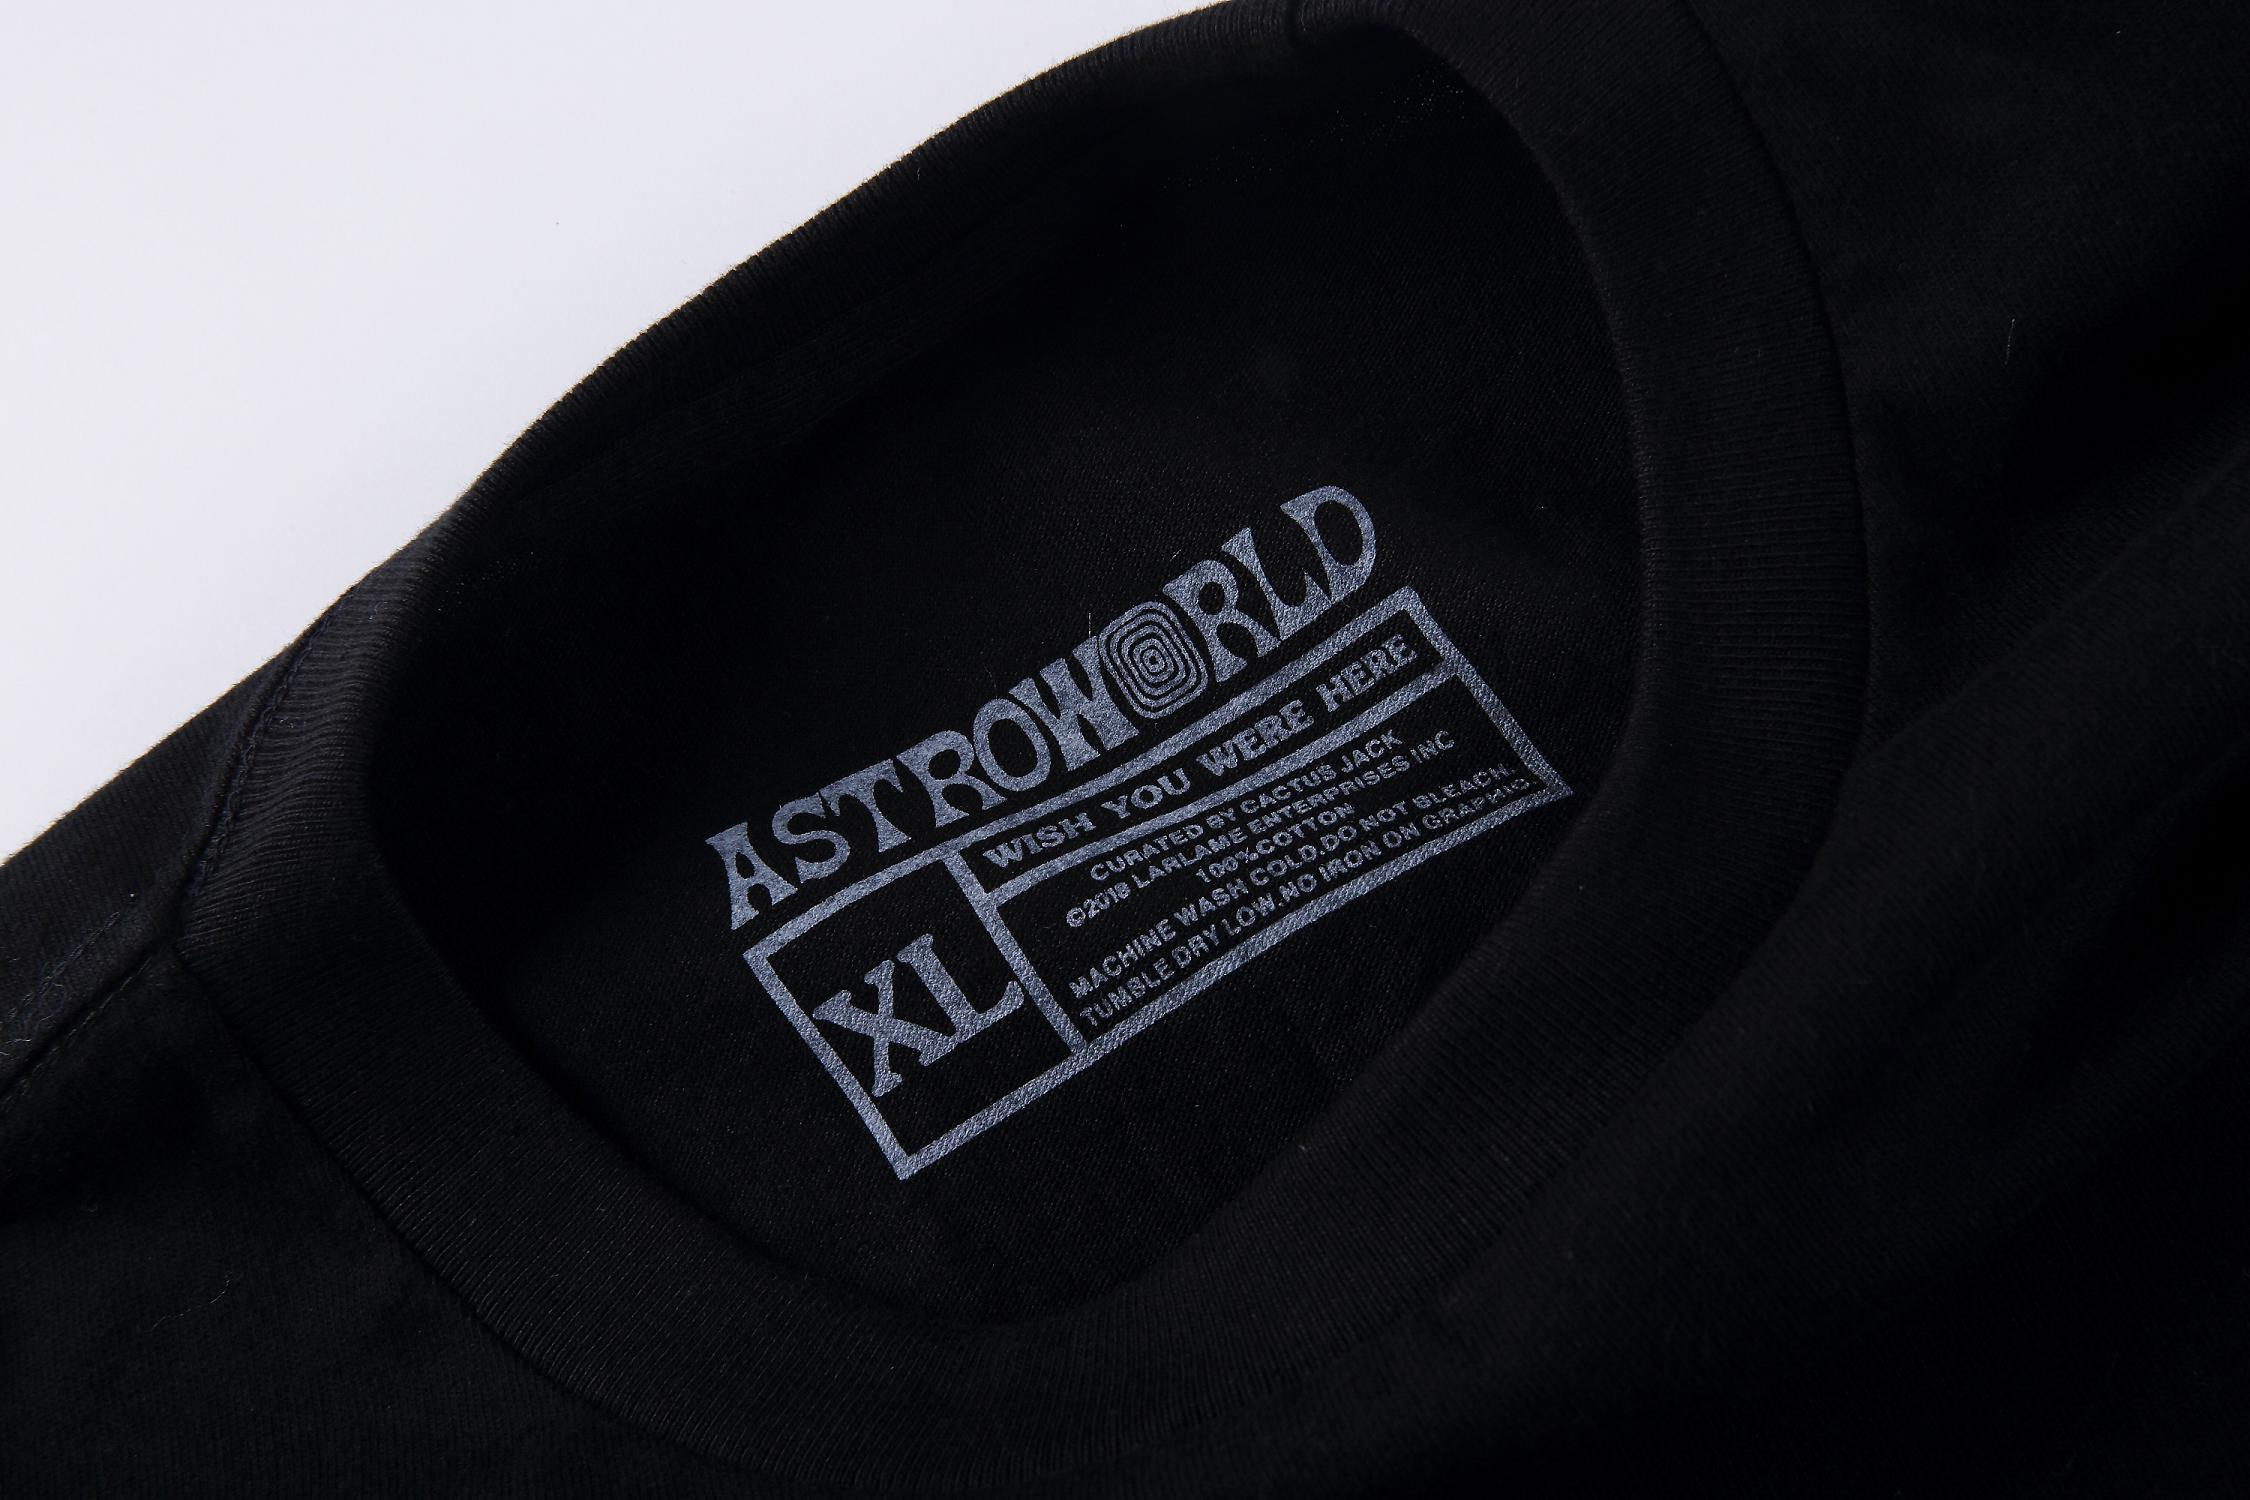 Look Mom I Can Fly Festival Shirt (Best Quality) - AstroWorlds Merch【Limited Collection 】